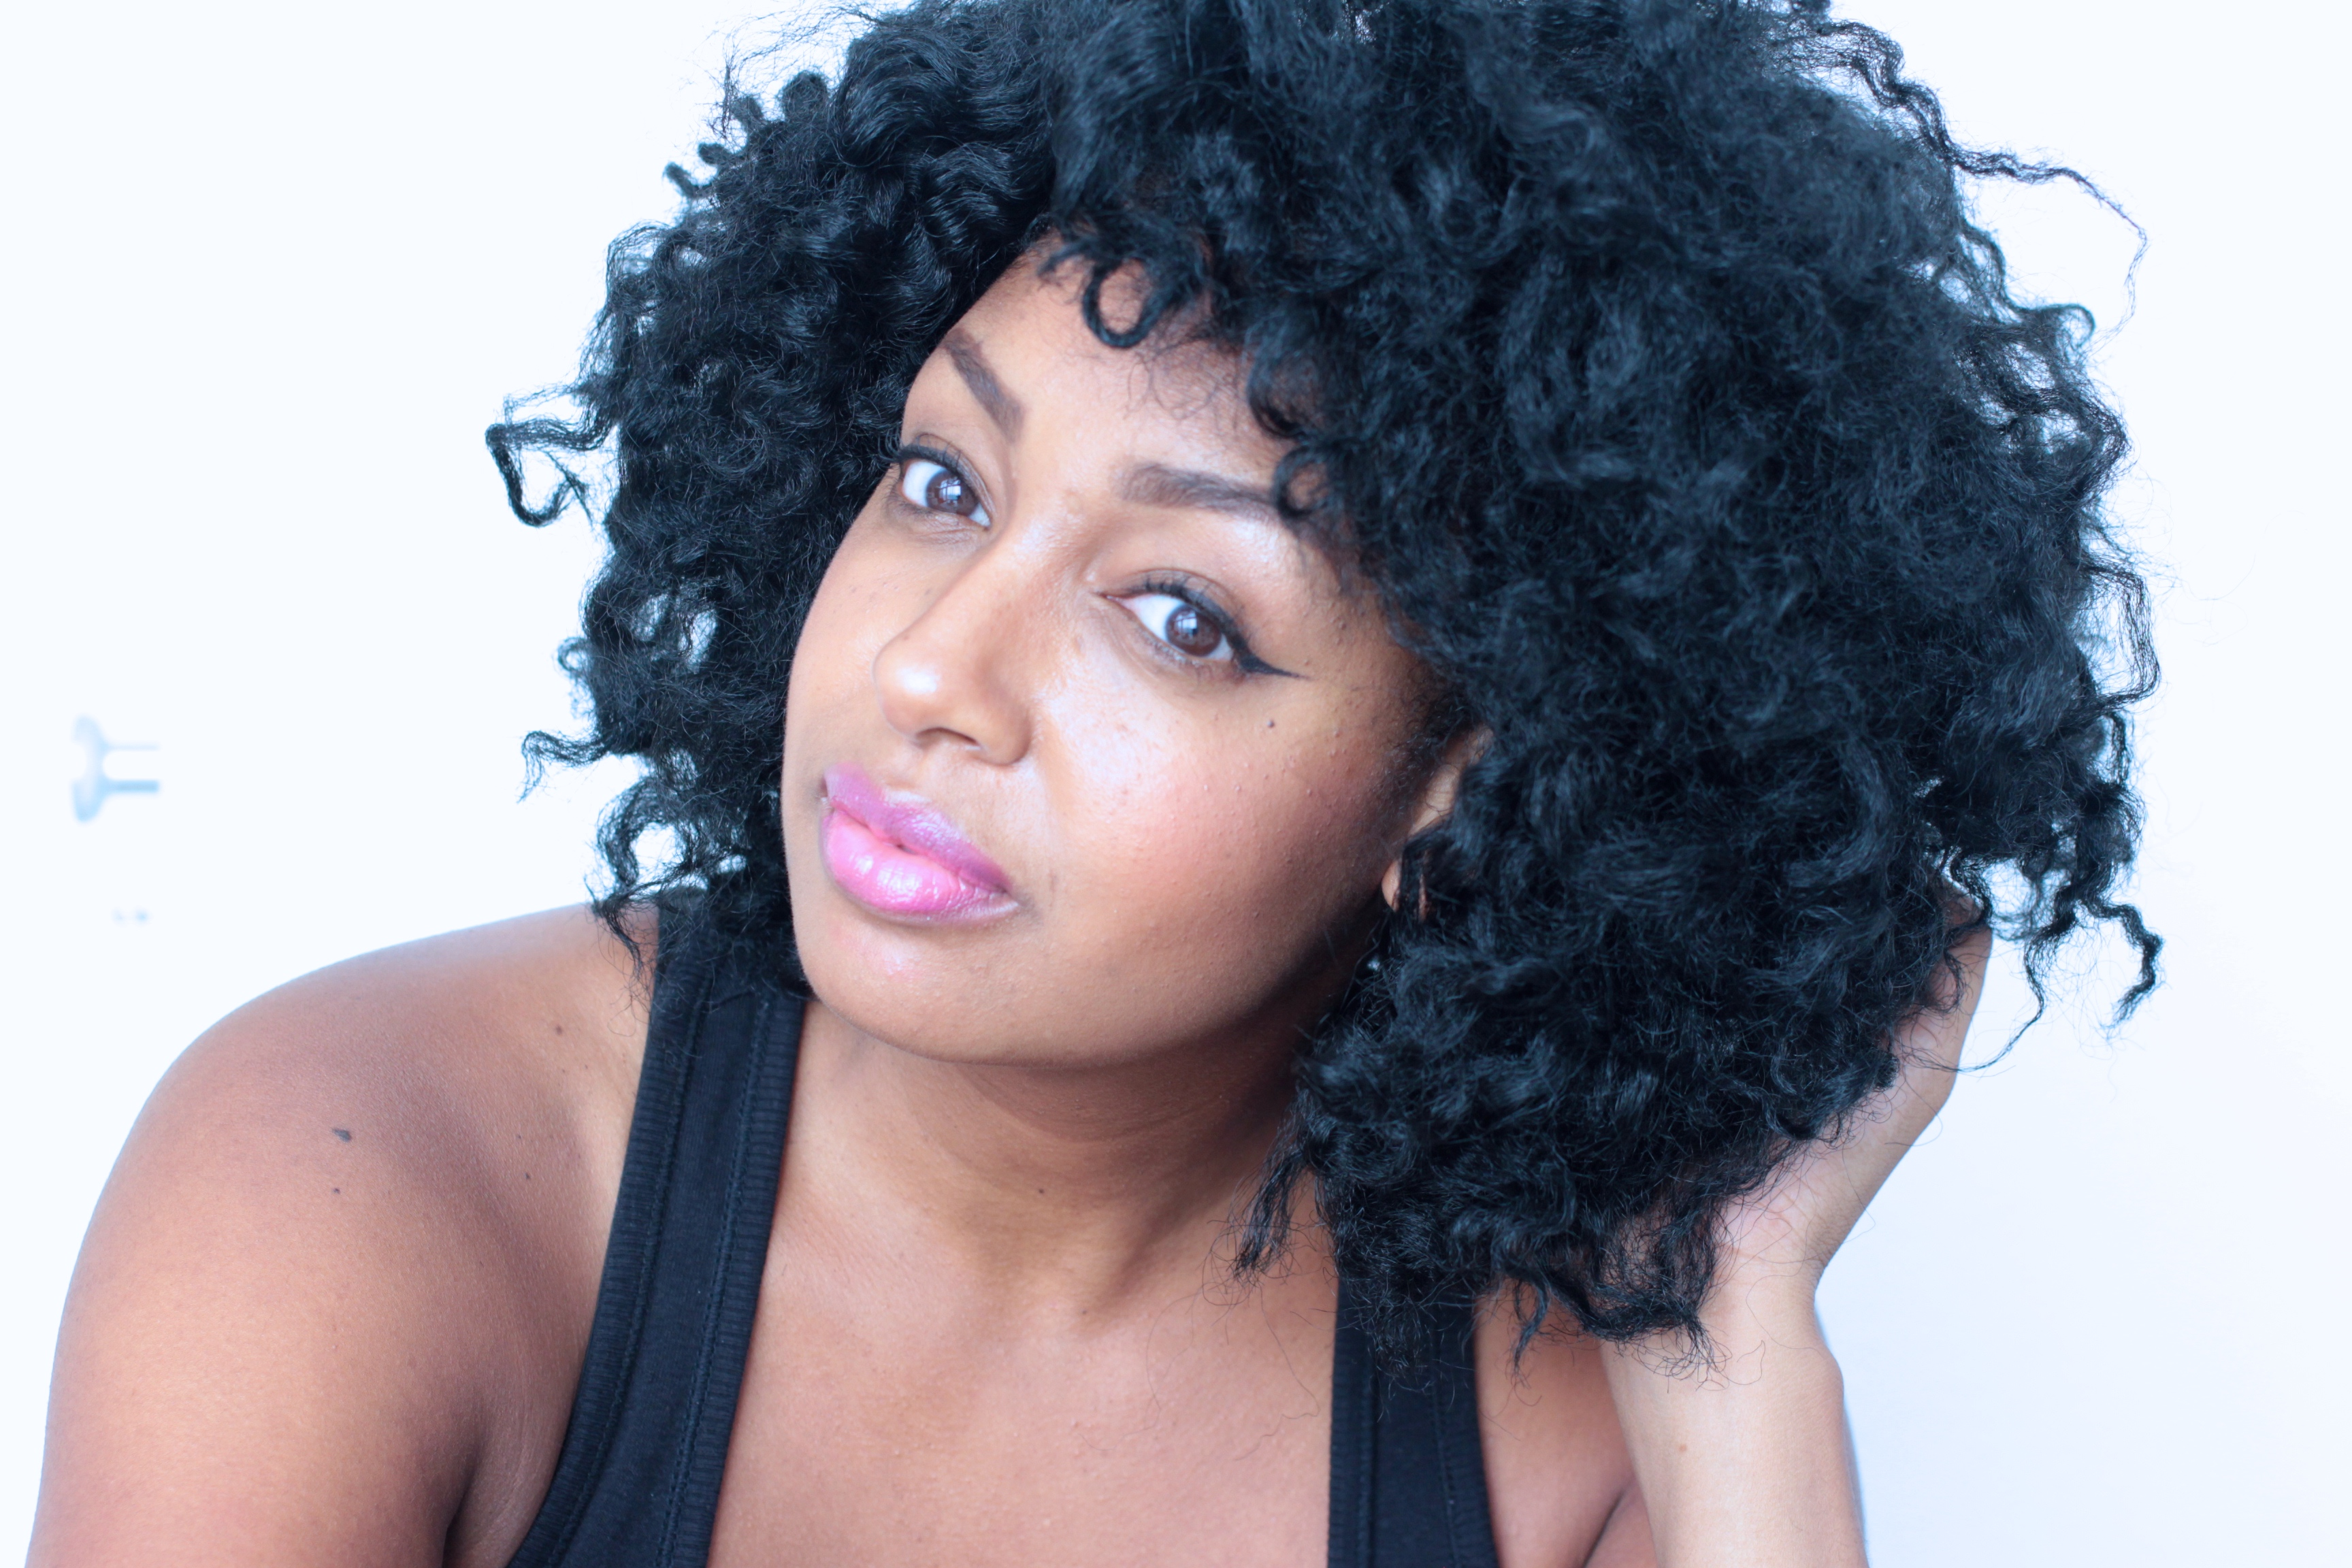 Crocheting Your Hair : Styled in Black - Hooked on crochet braids -